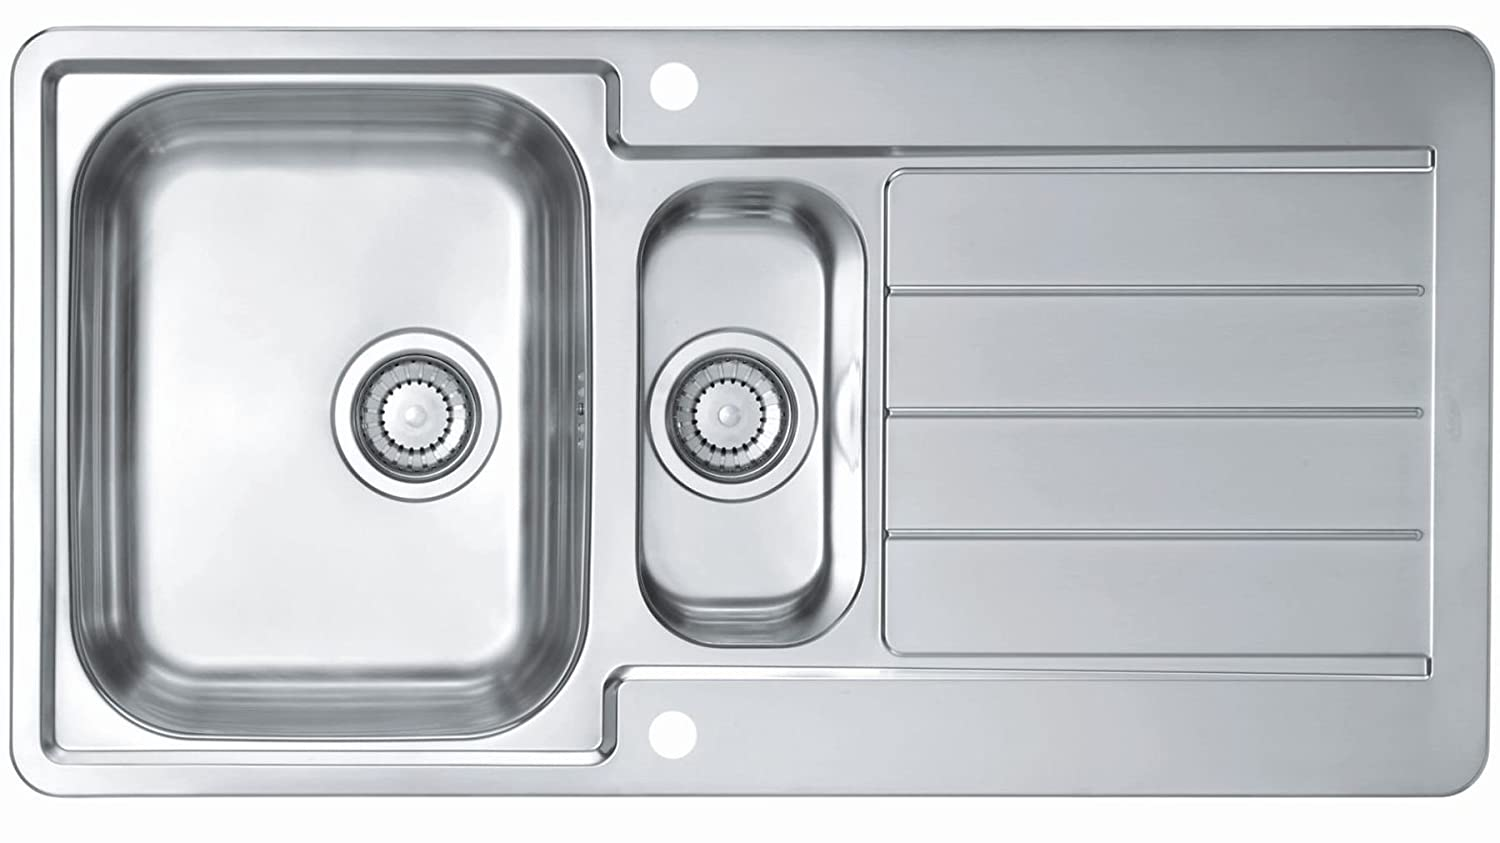 980 X 500 Kitchen Sink